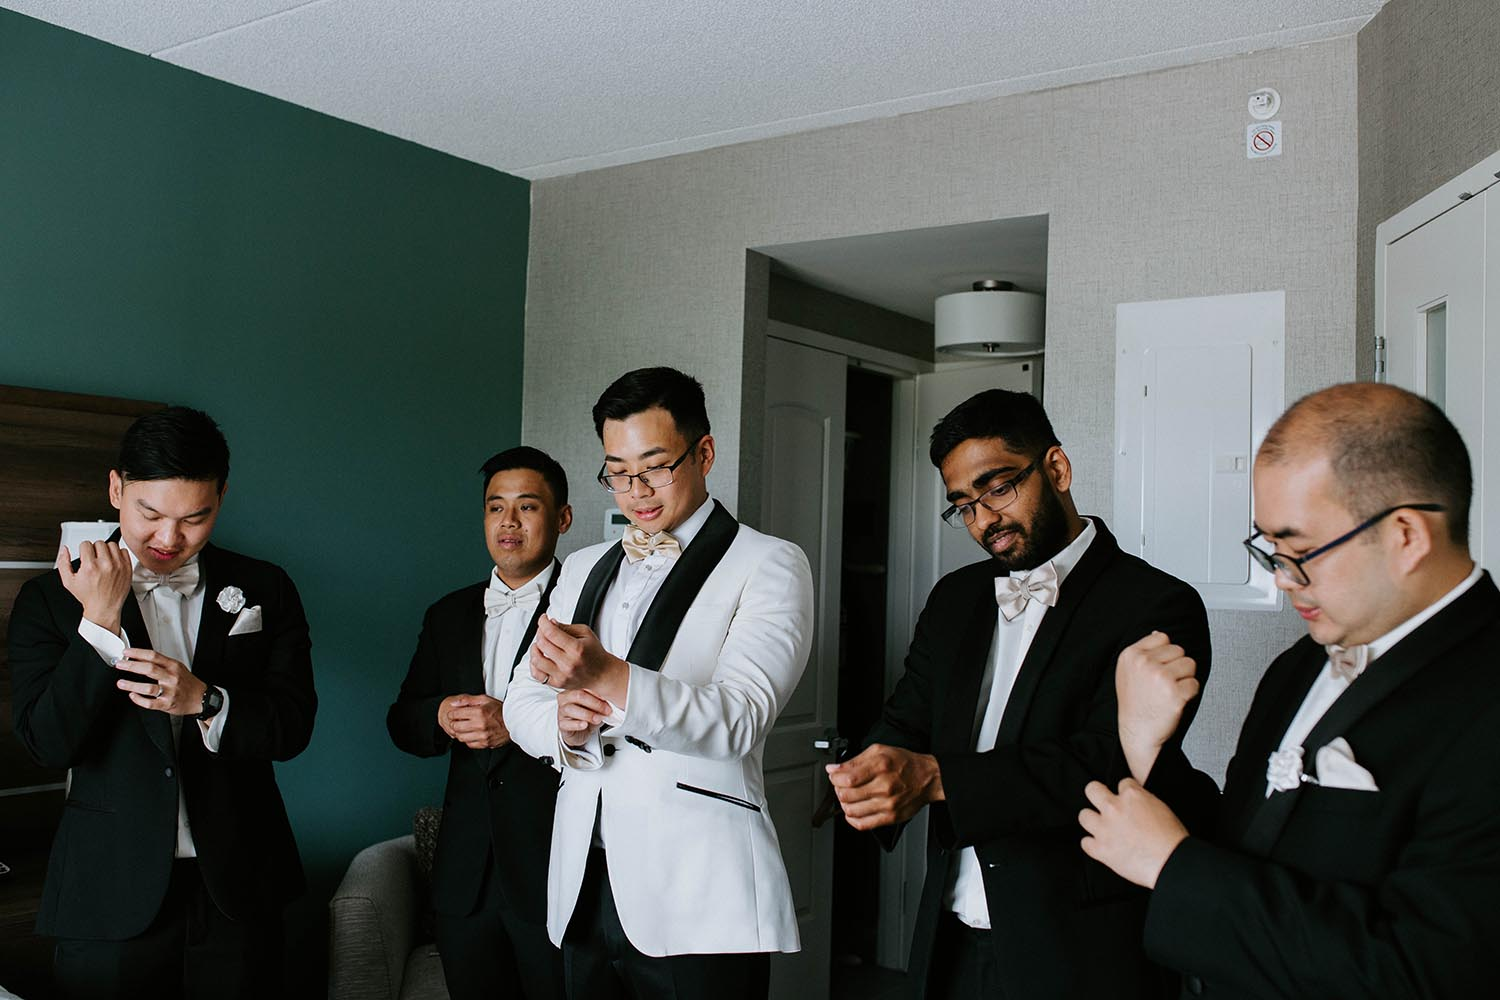 groomsmen-fashion-suits-copperred-photography.jpg